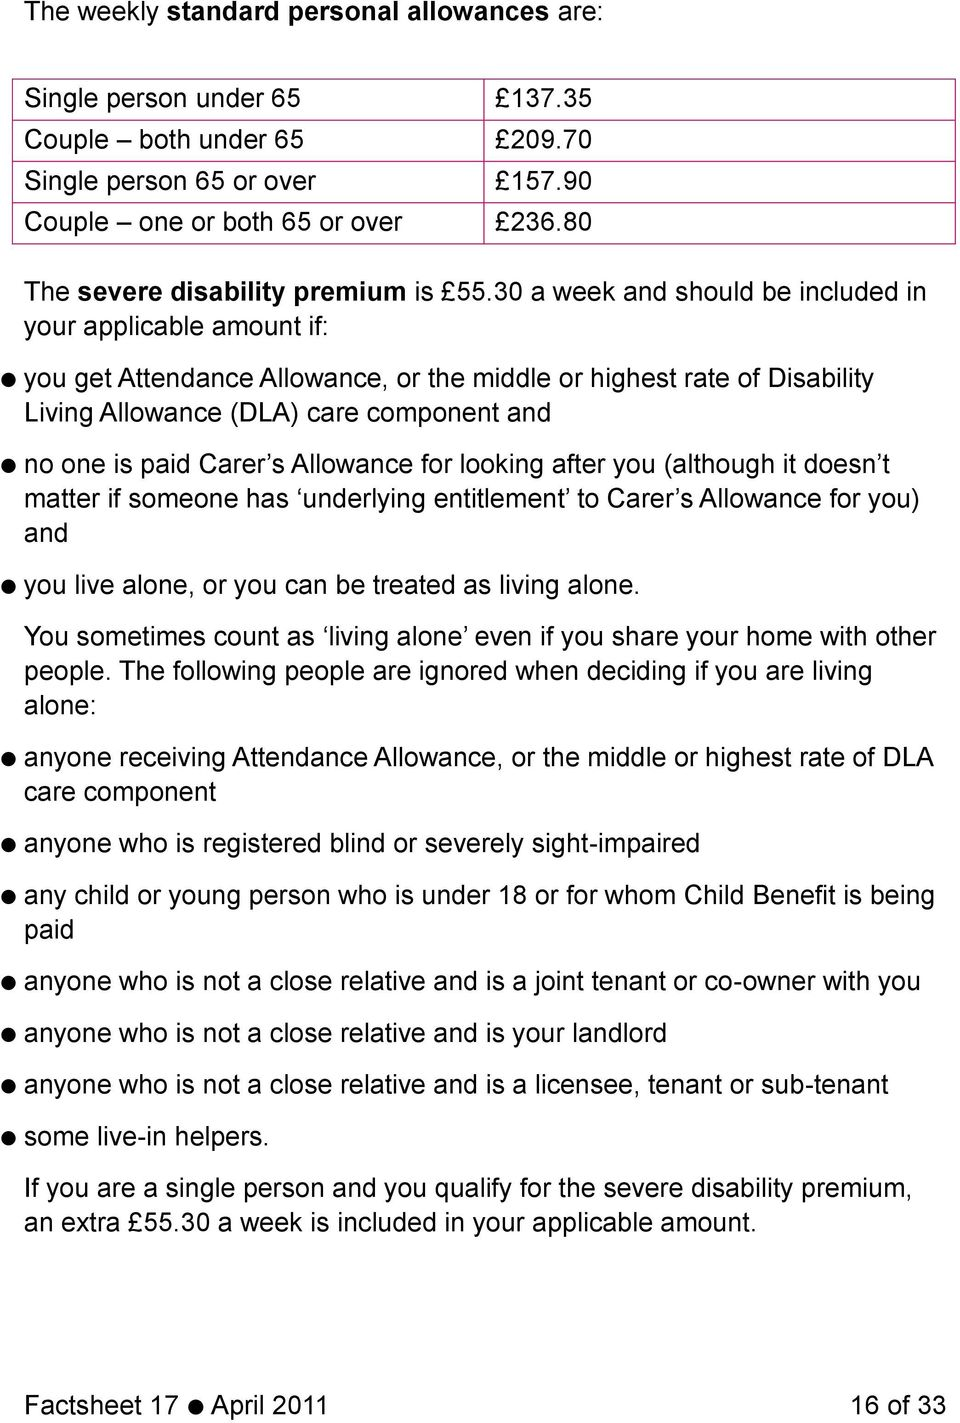 30 a week and should be included in your applicable amount if: you get Attendance Allowance, or the middle or highest rate of Disability Living Allowance (DLA) care component and no one is paid Carer